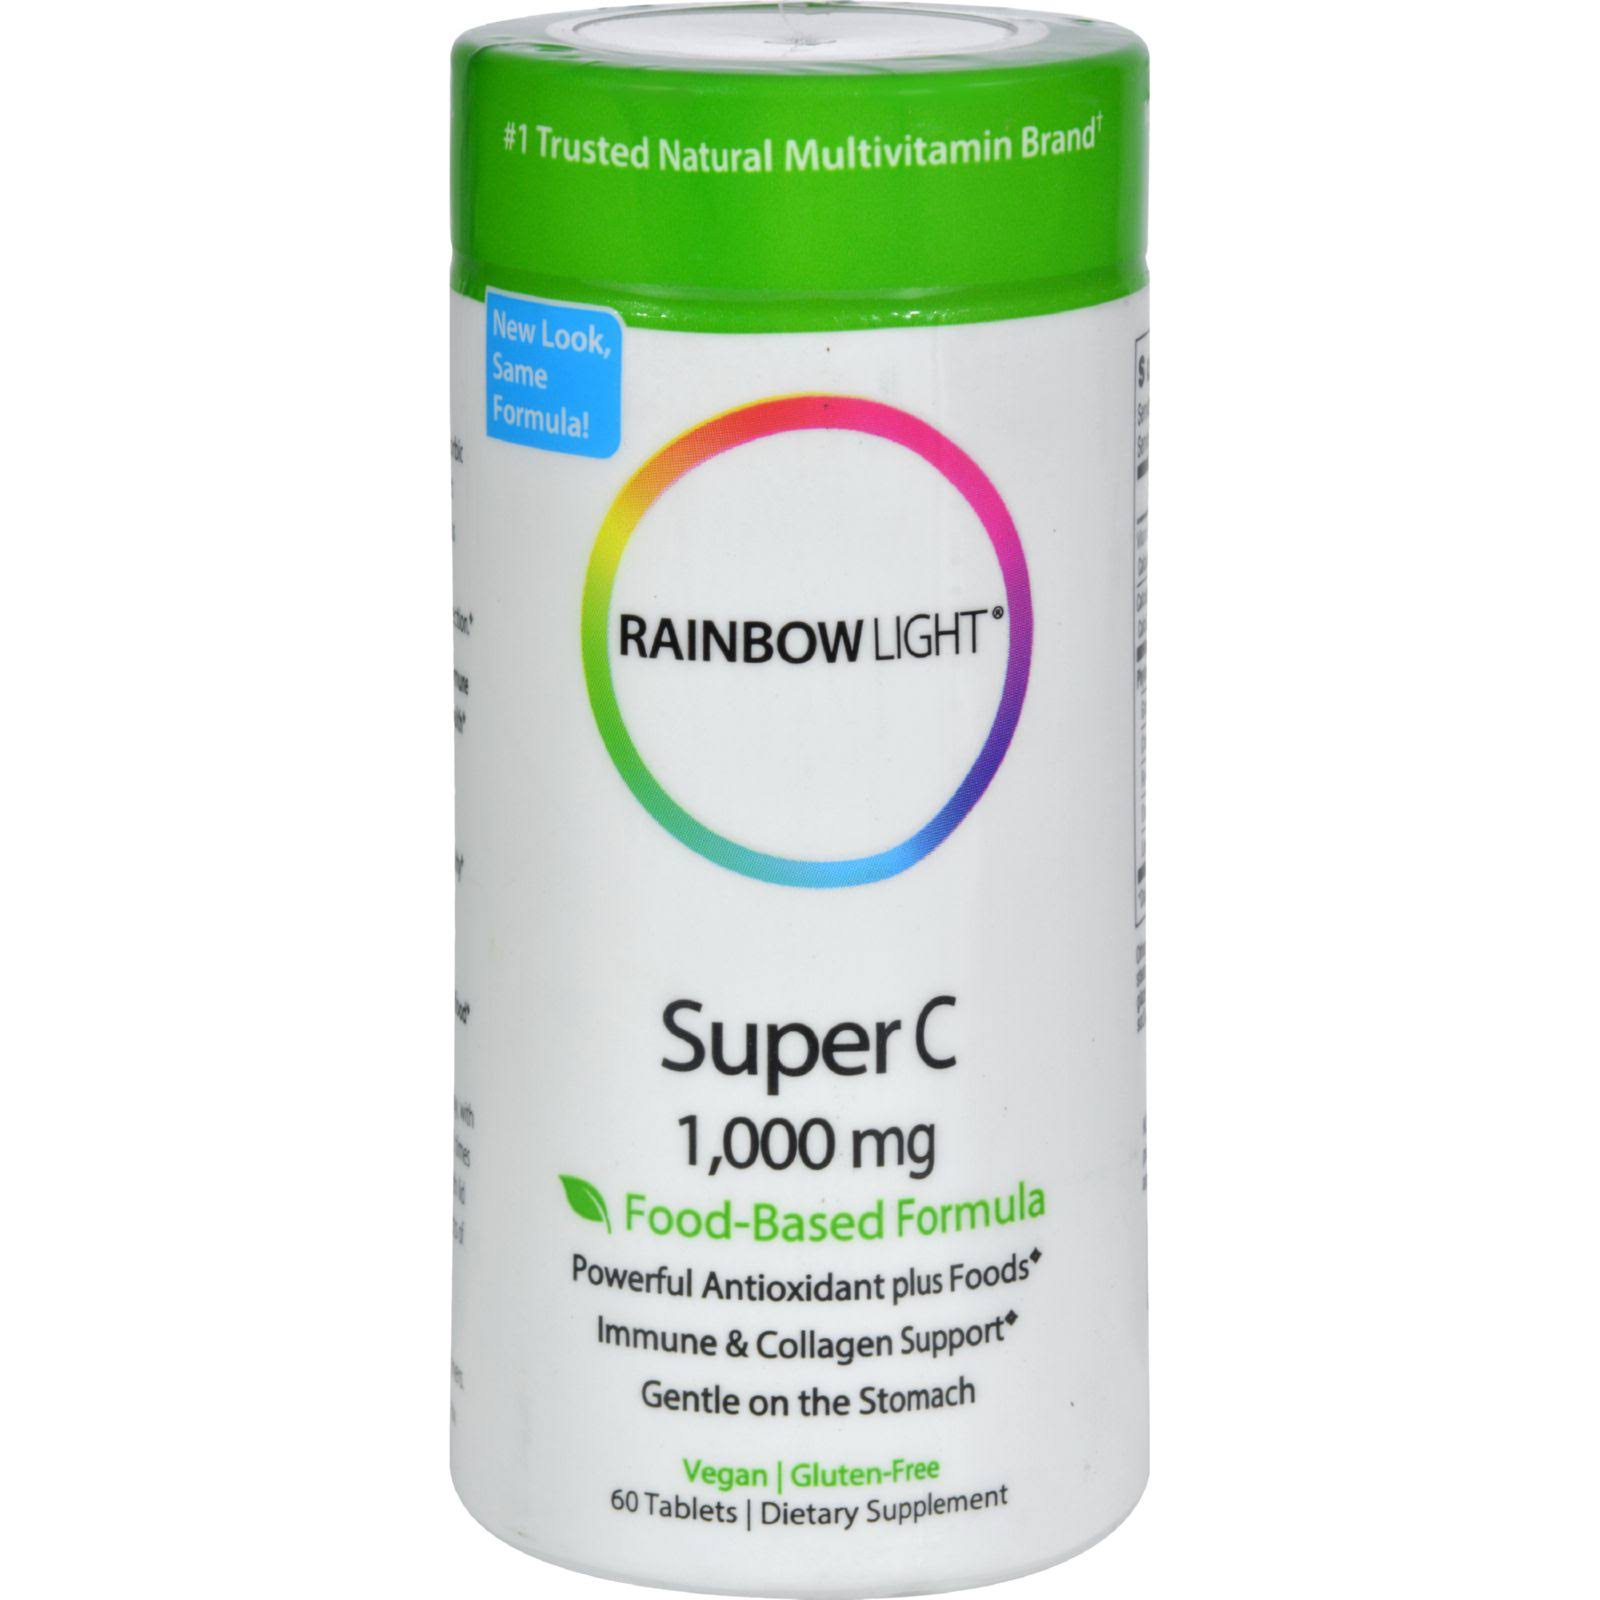 Rainbow Light Super C 1000mg Tablet - 60 Tablets